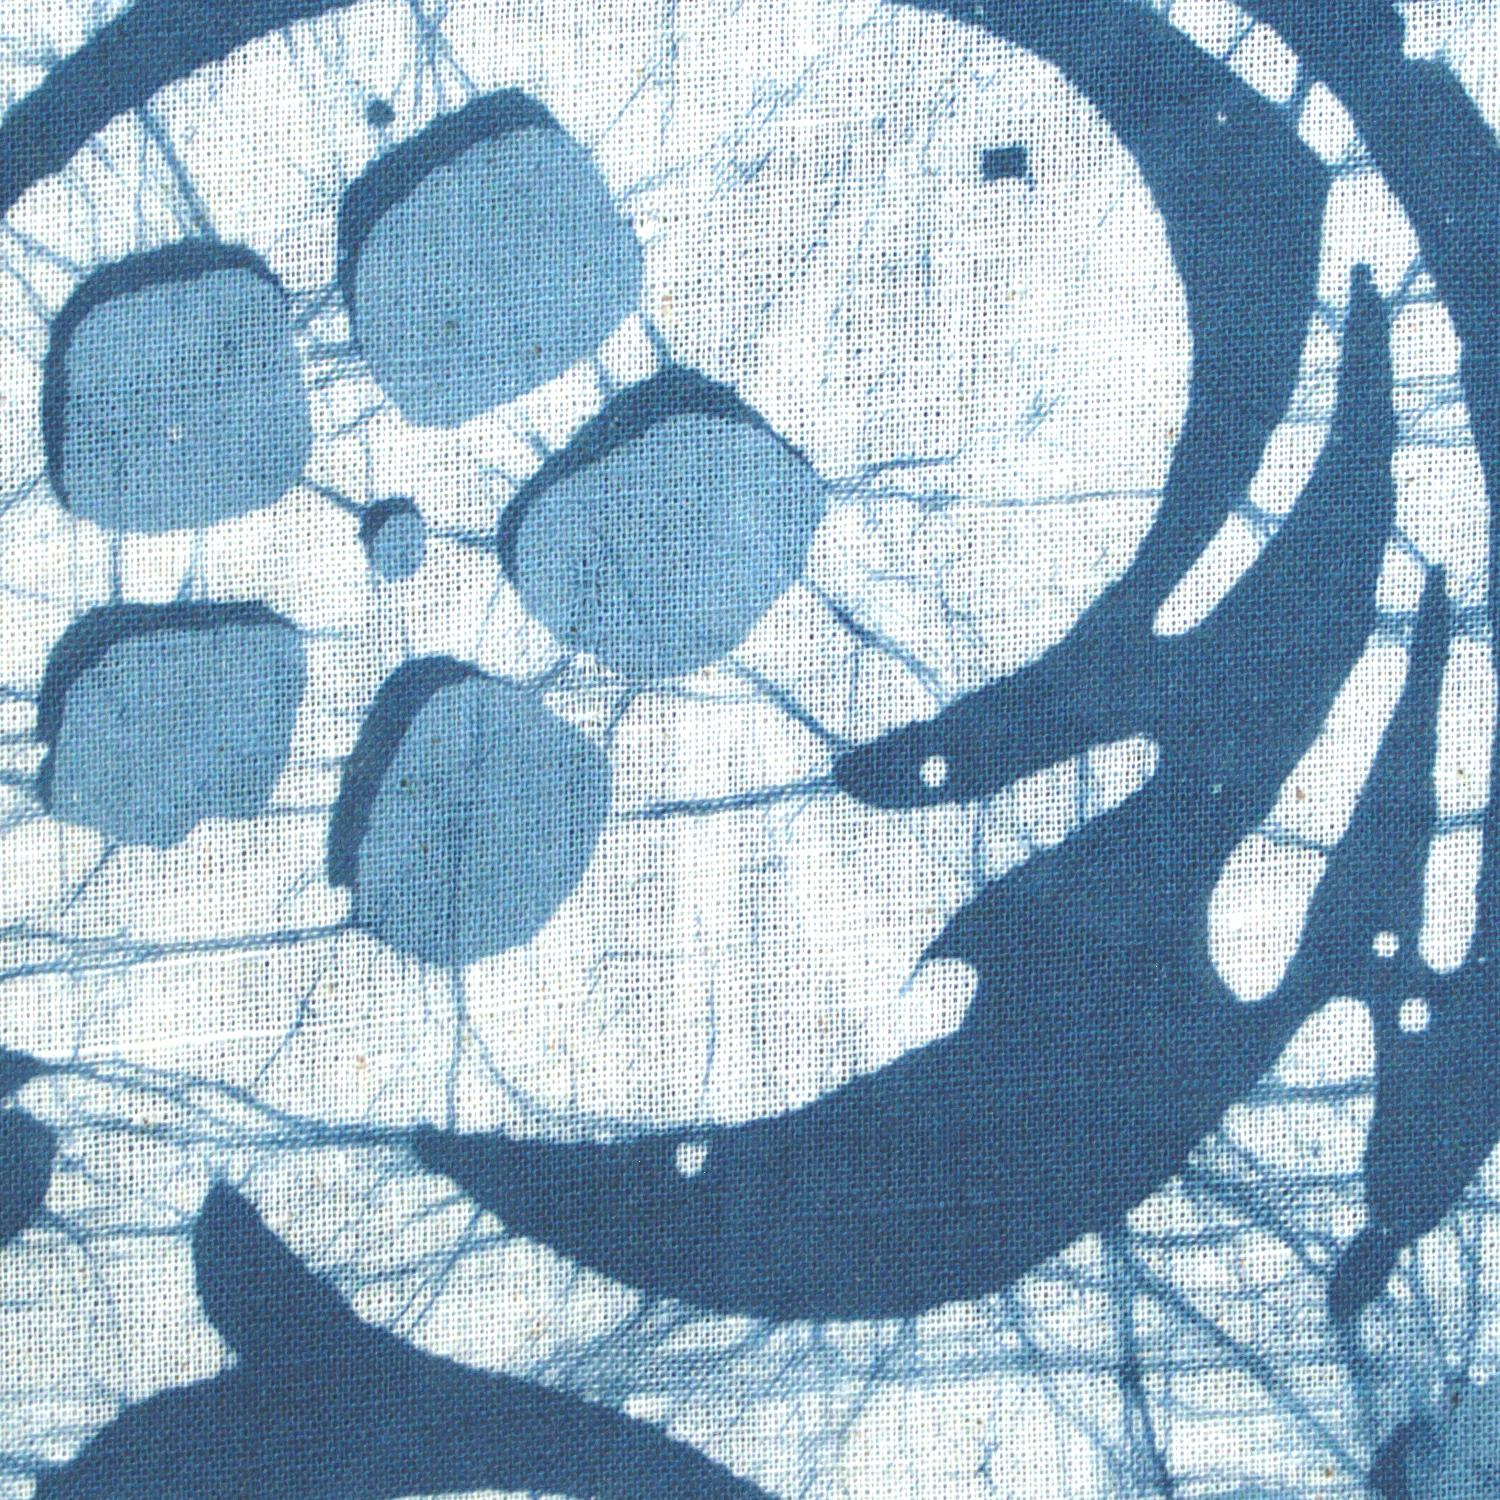 4 - SHA14 - 100% Block-Printed Batik Cotton Fabric From India - Batik - Blue Swirls - Close Up